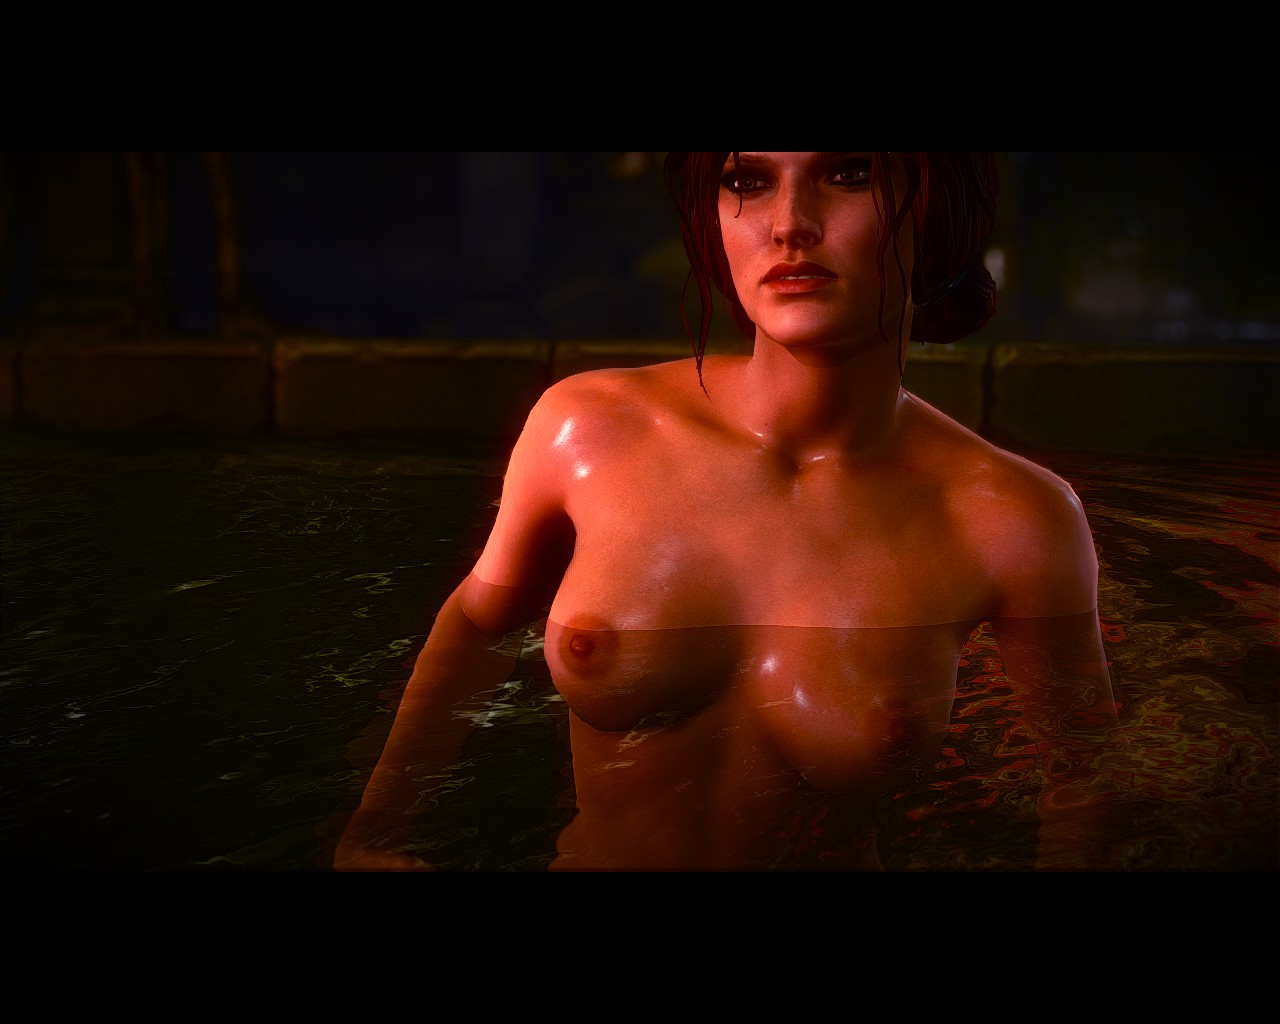 Witcher sex scene smut galleries